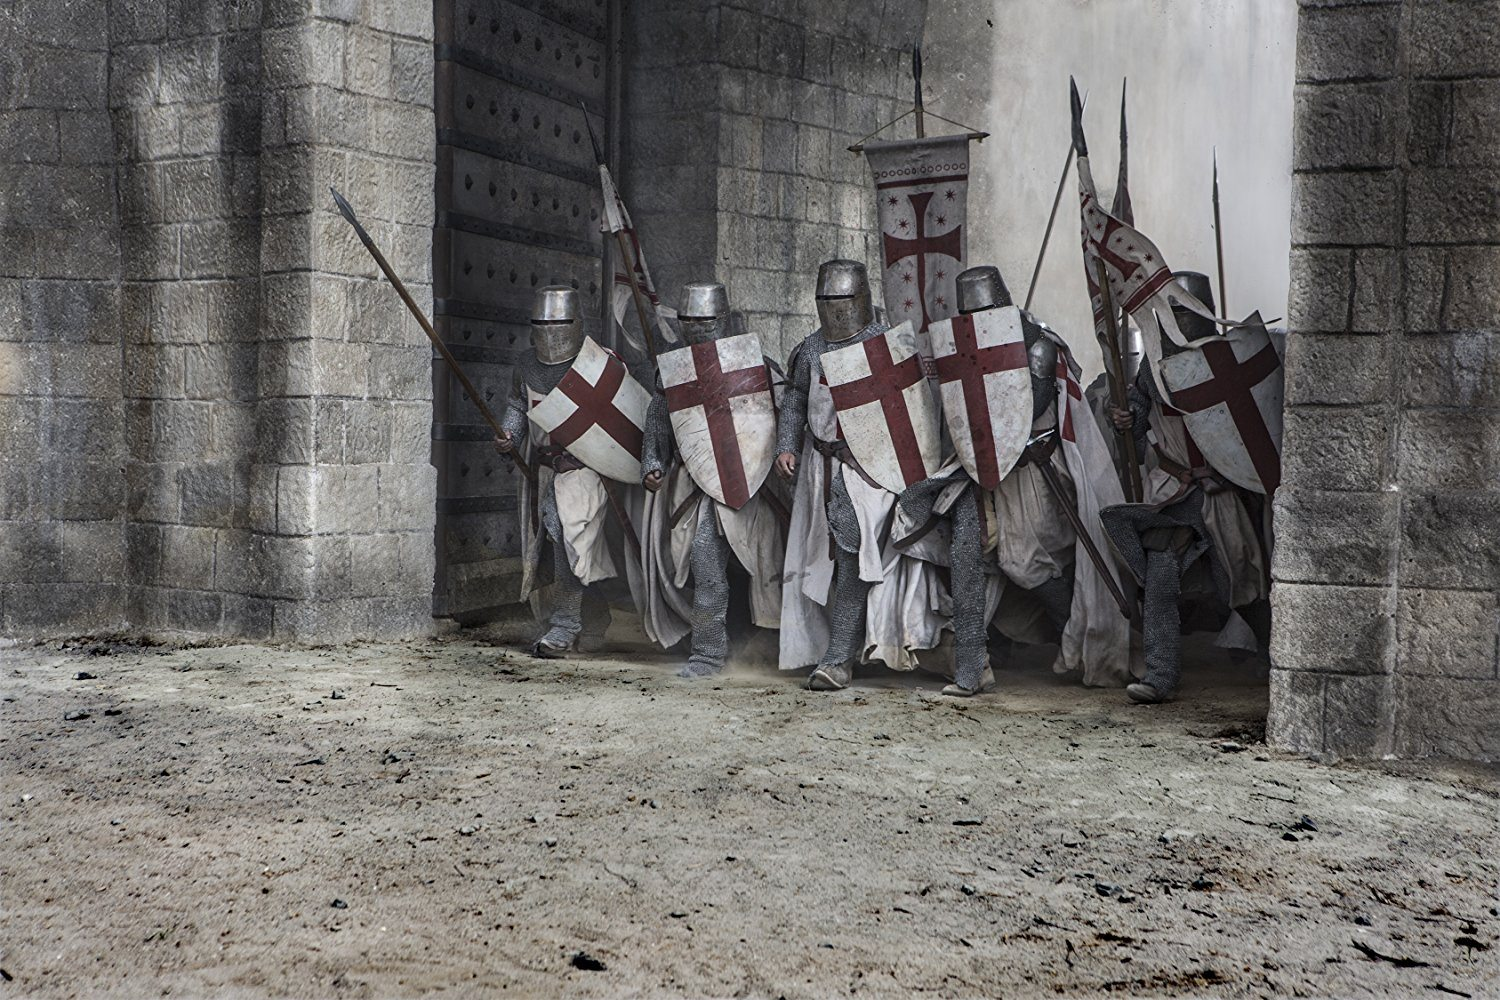 Knights armed with shields in Knightfall